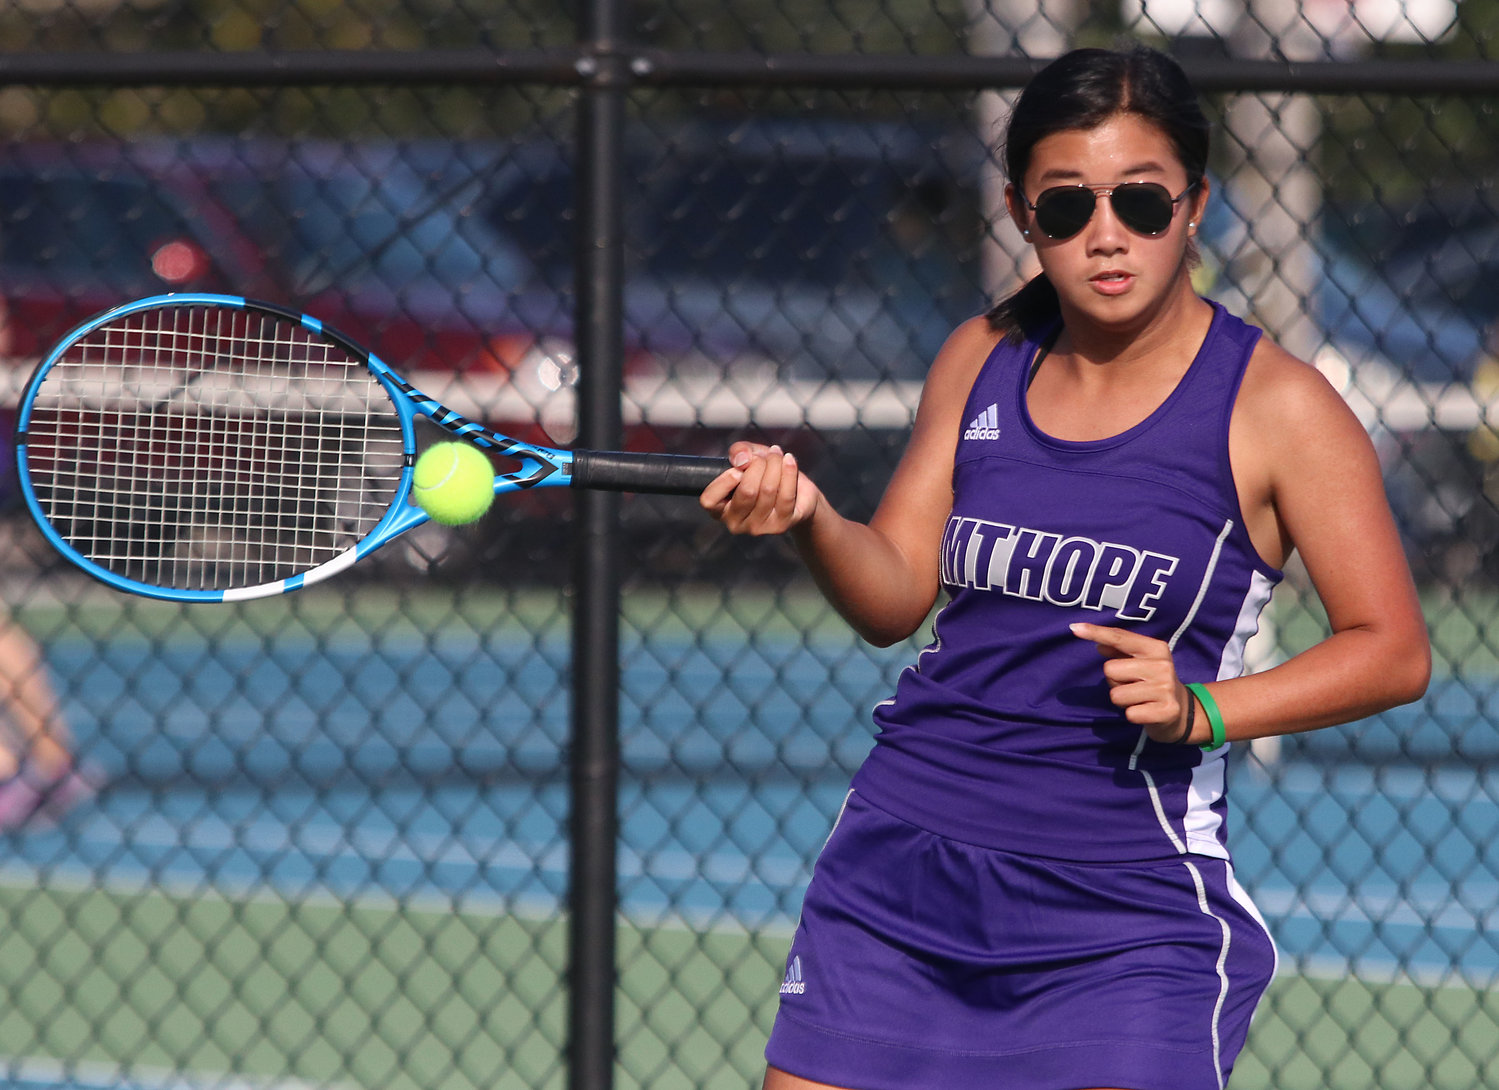 Eva White hits a forehand during her match against Jealey Barone of Portsmouth. White won 6-4, 7-5.